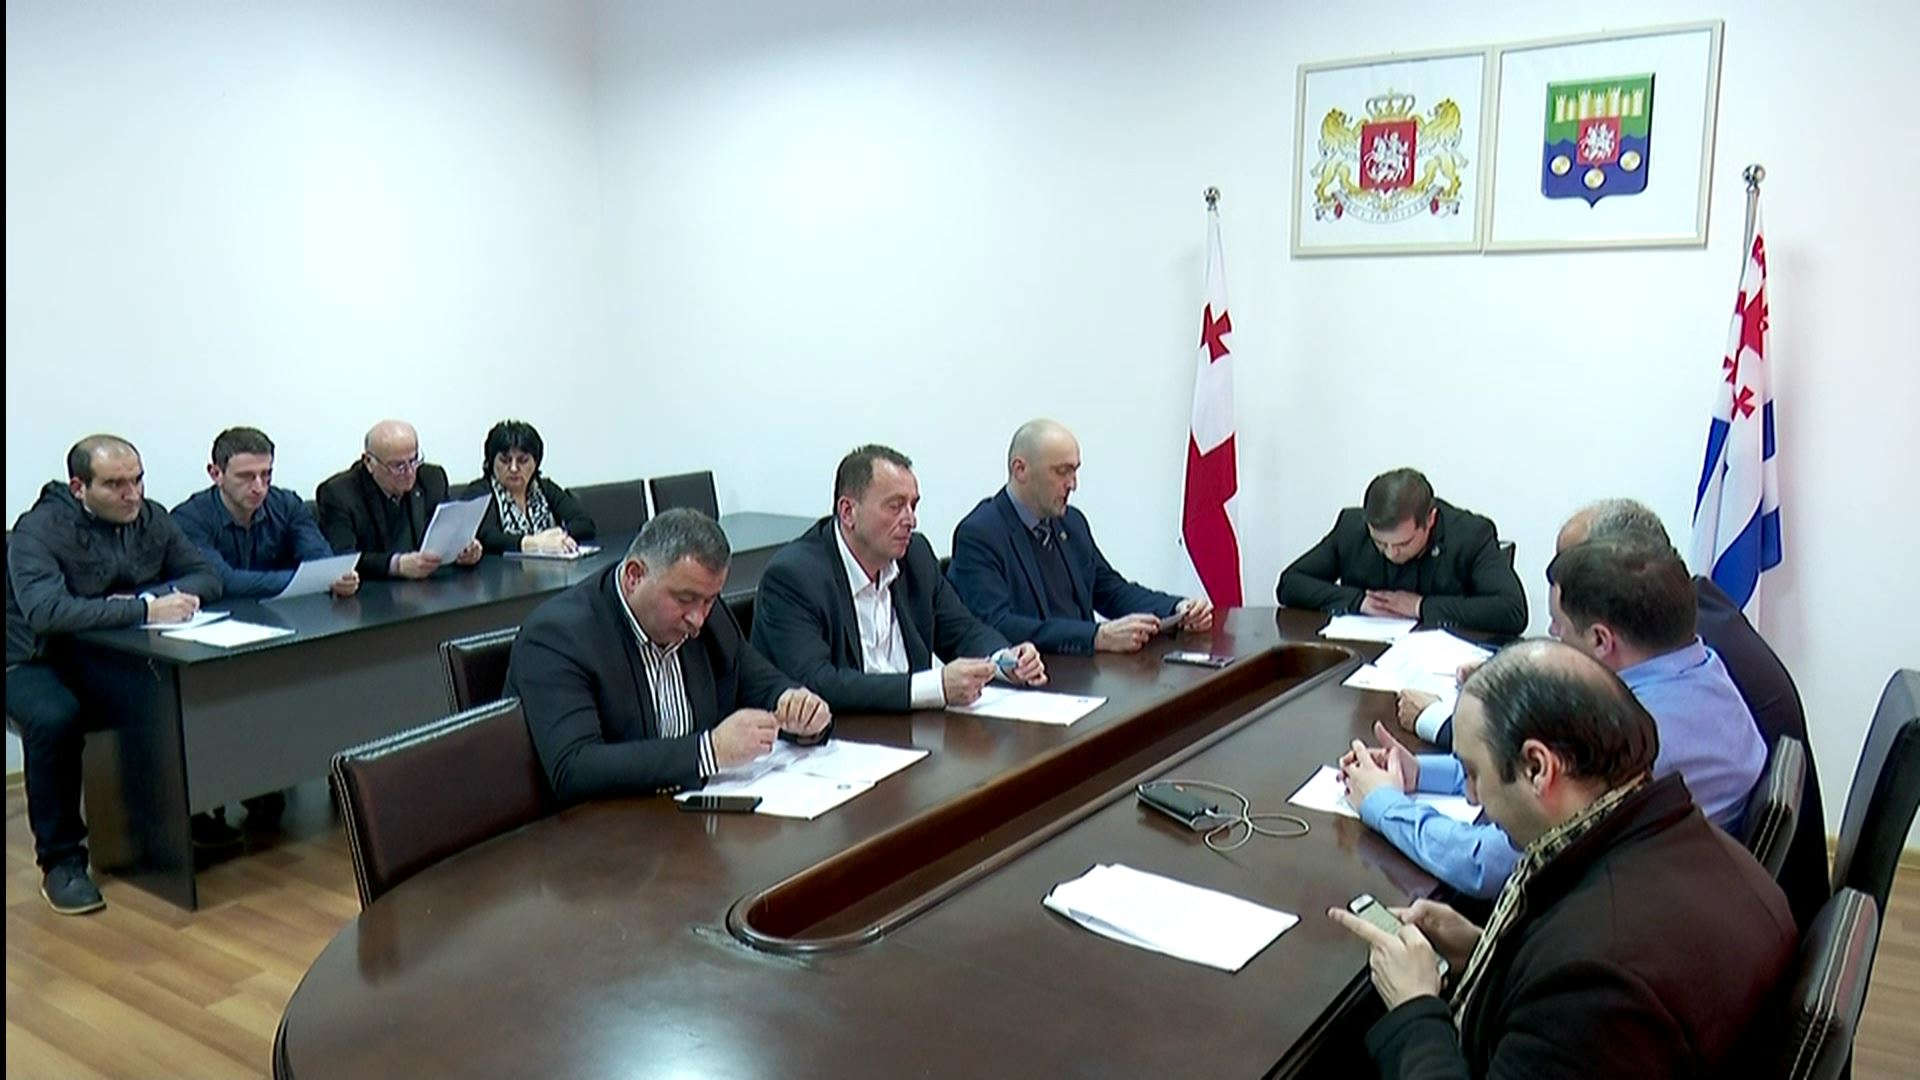 Archil Tatunashvili is working on the text of the resolution in the Supreme Council